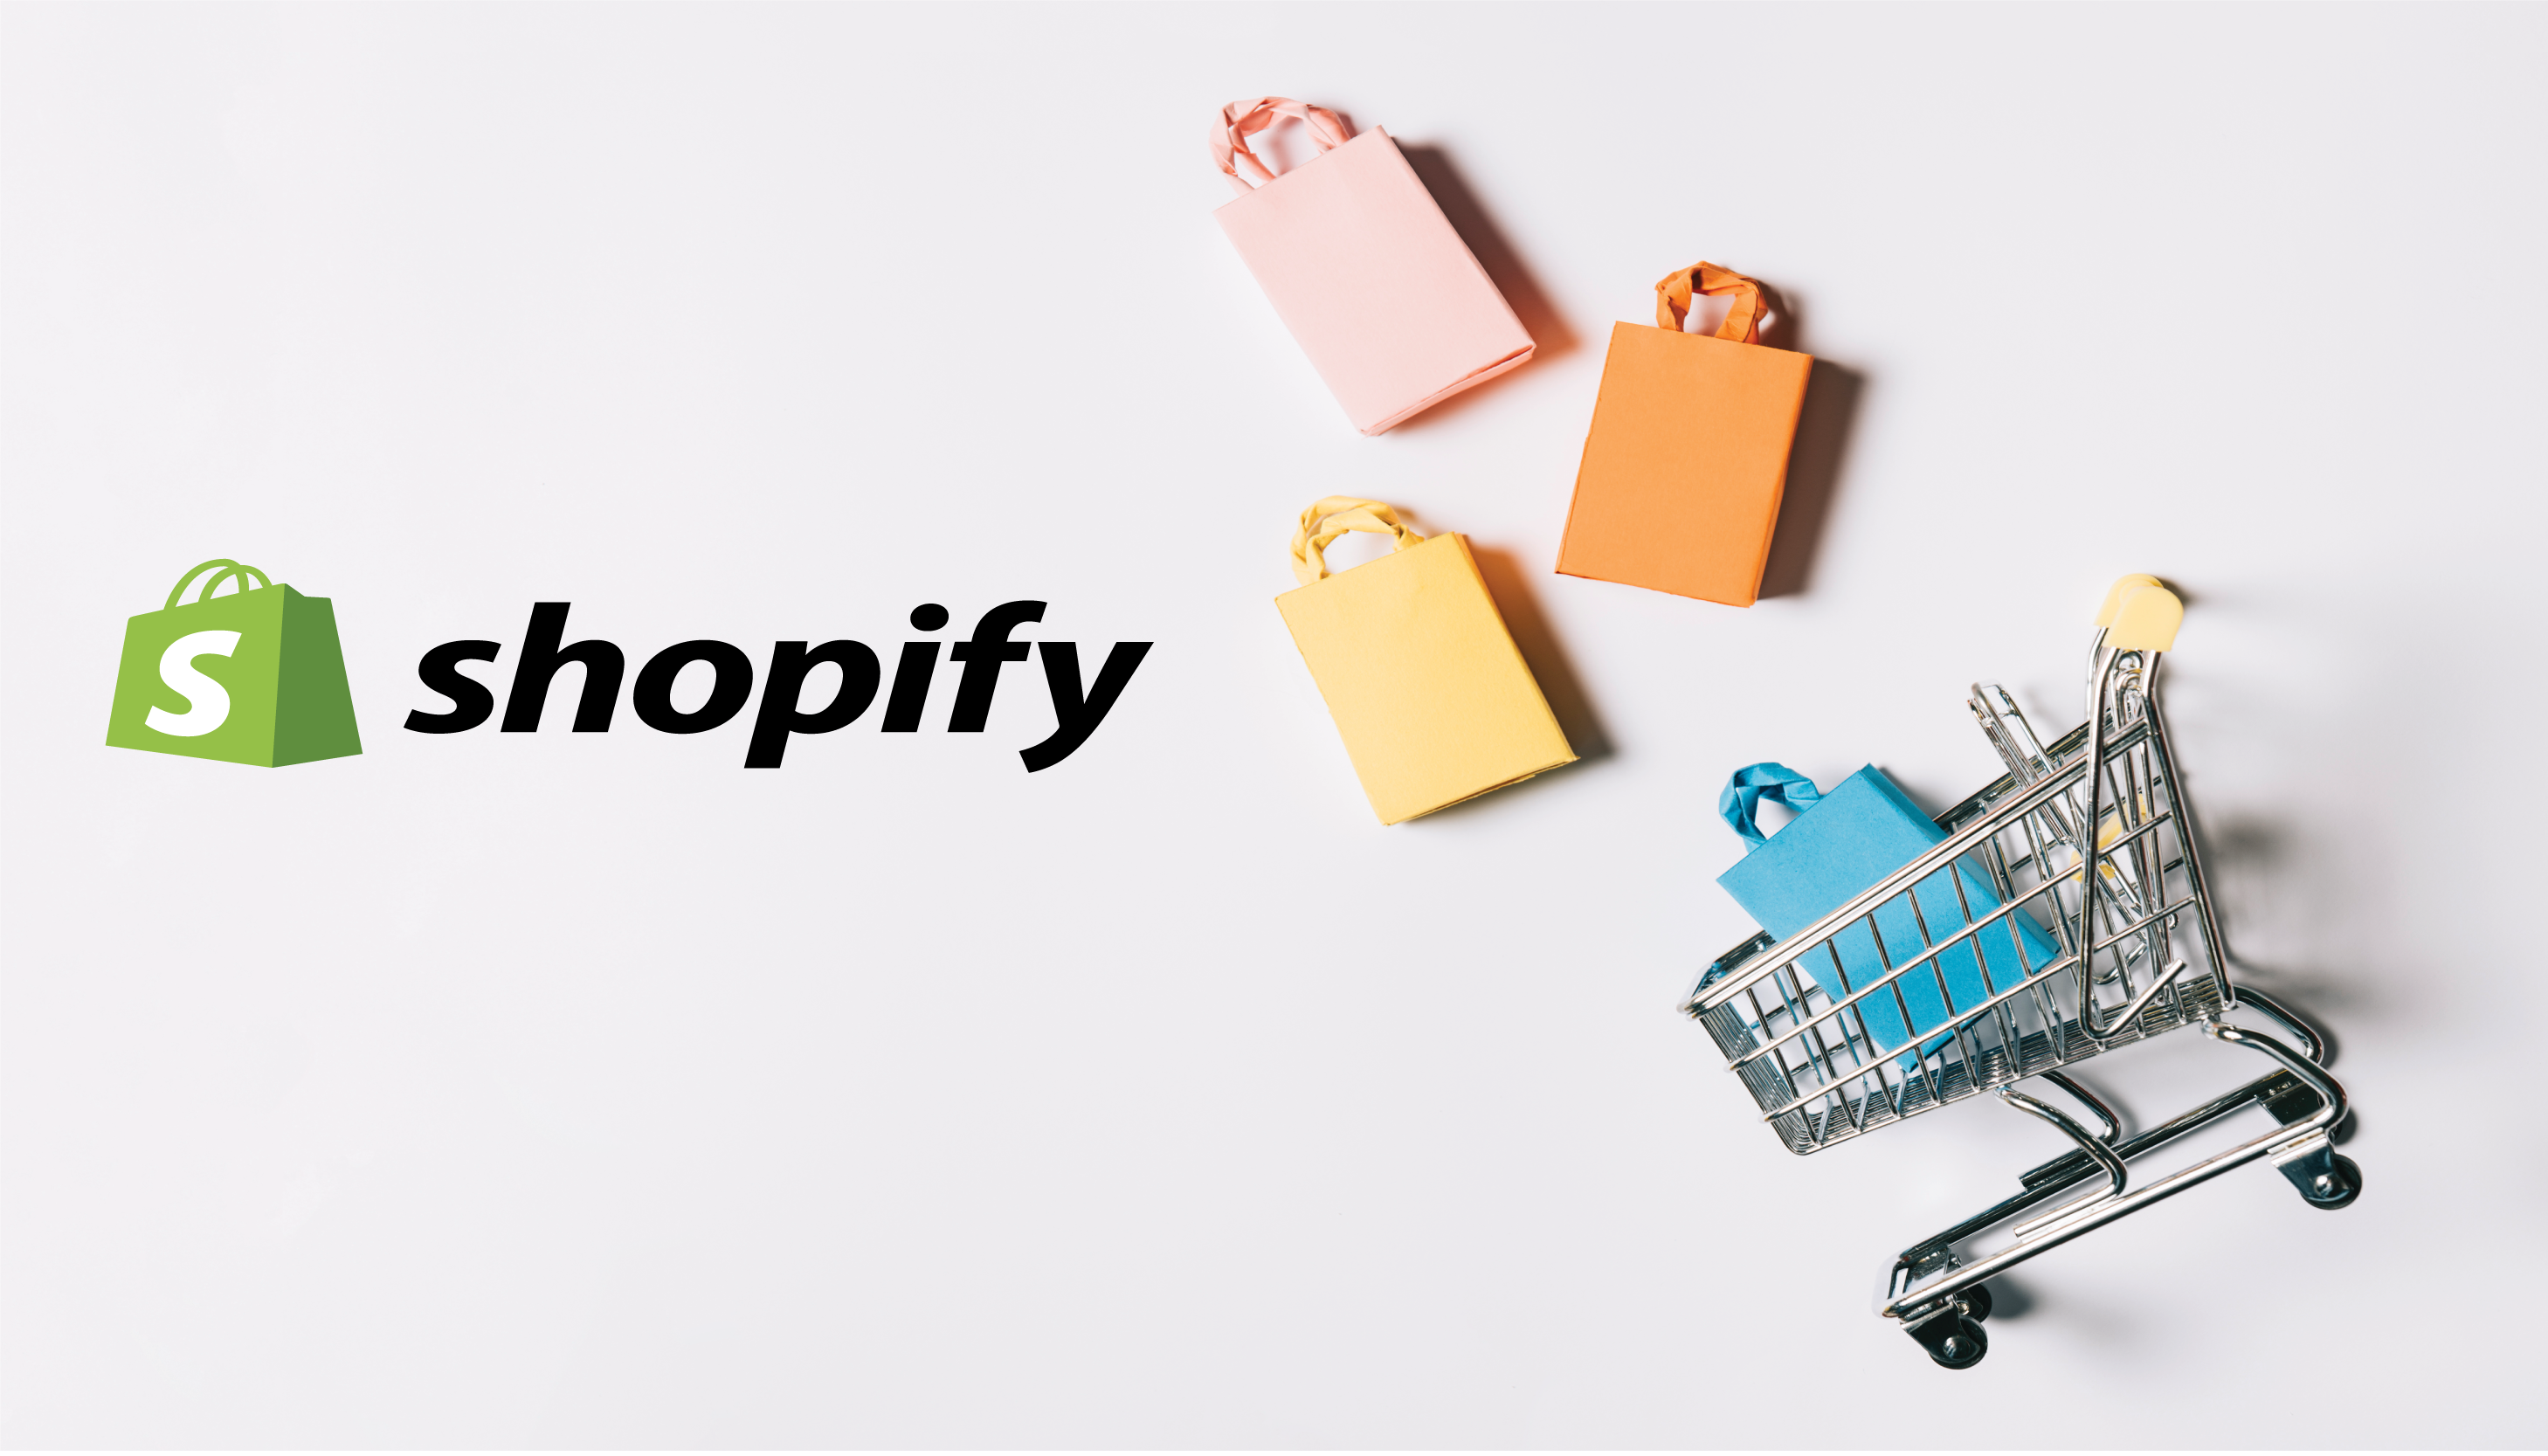 Shopify: Pricing plans